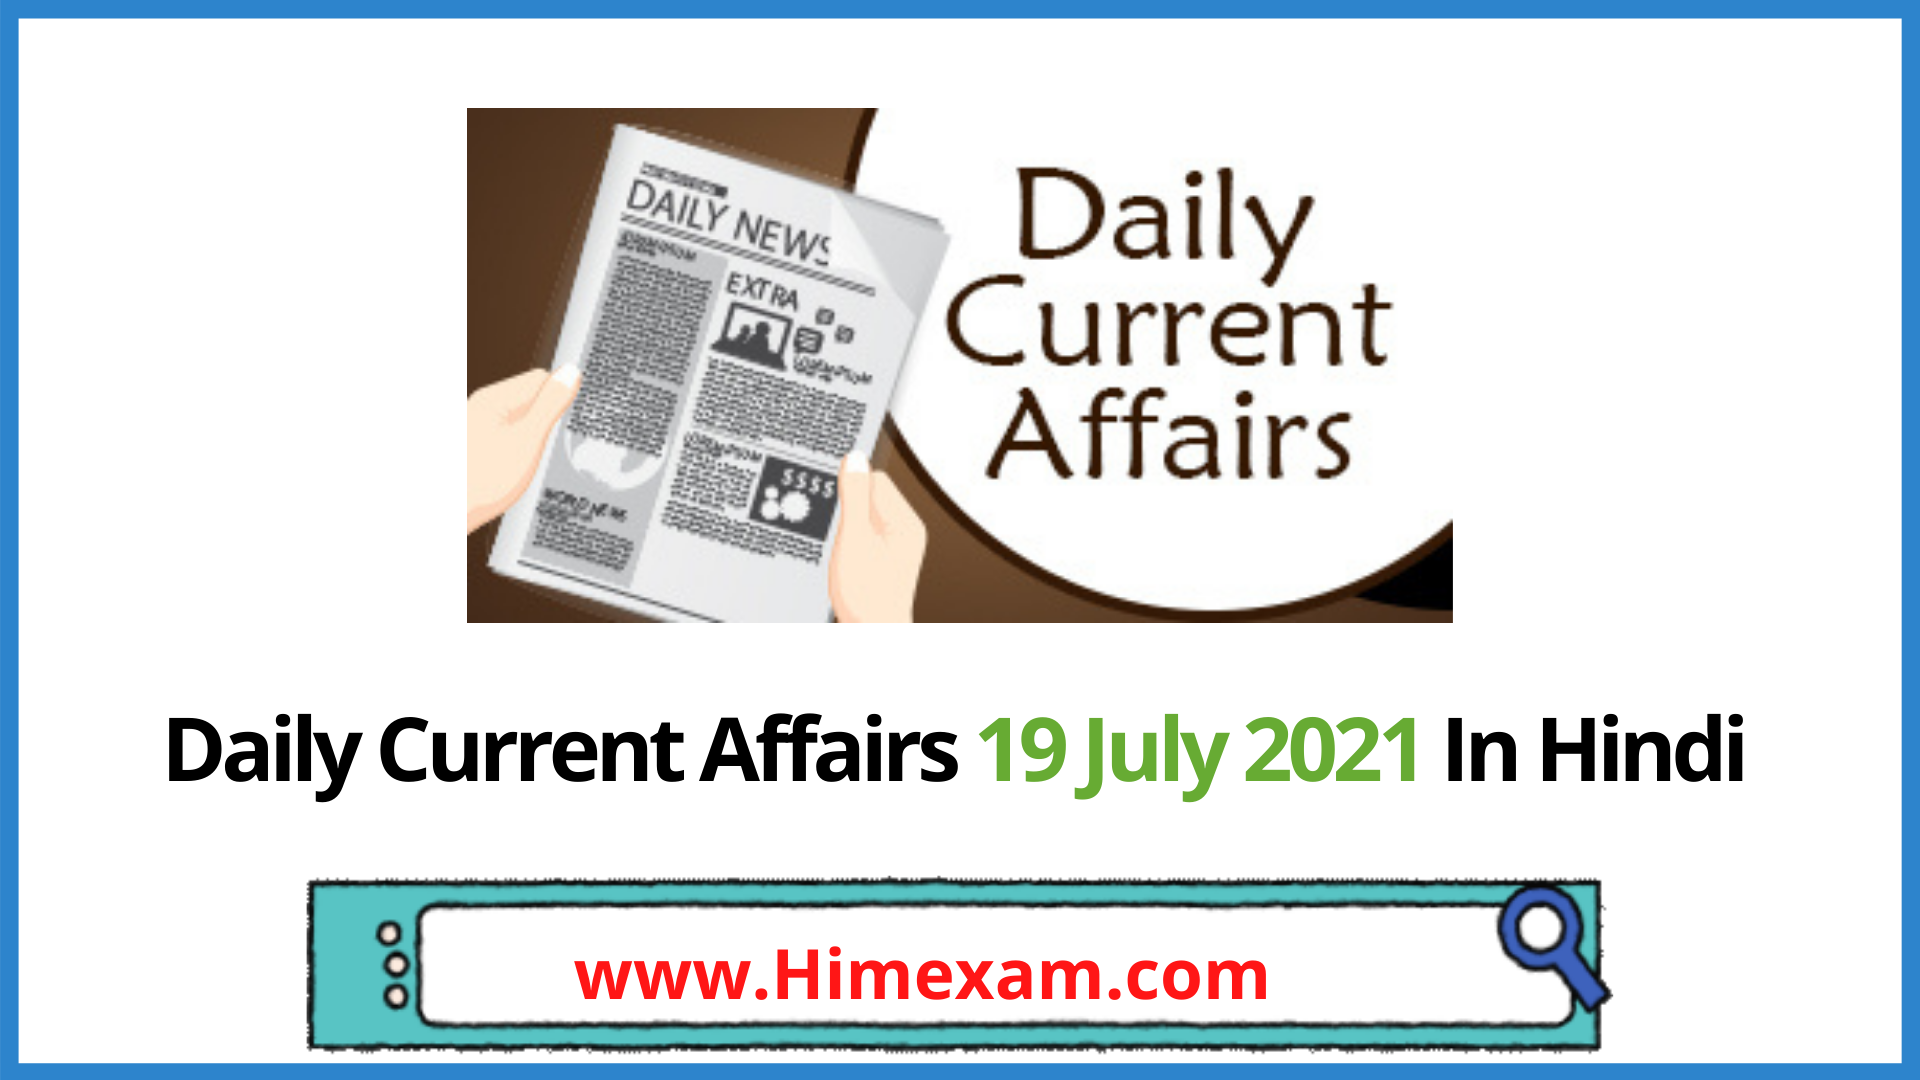 Daily Current Affairs 19 July 2021 In Hindi